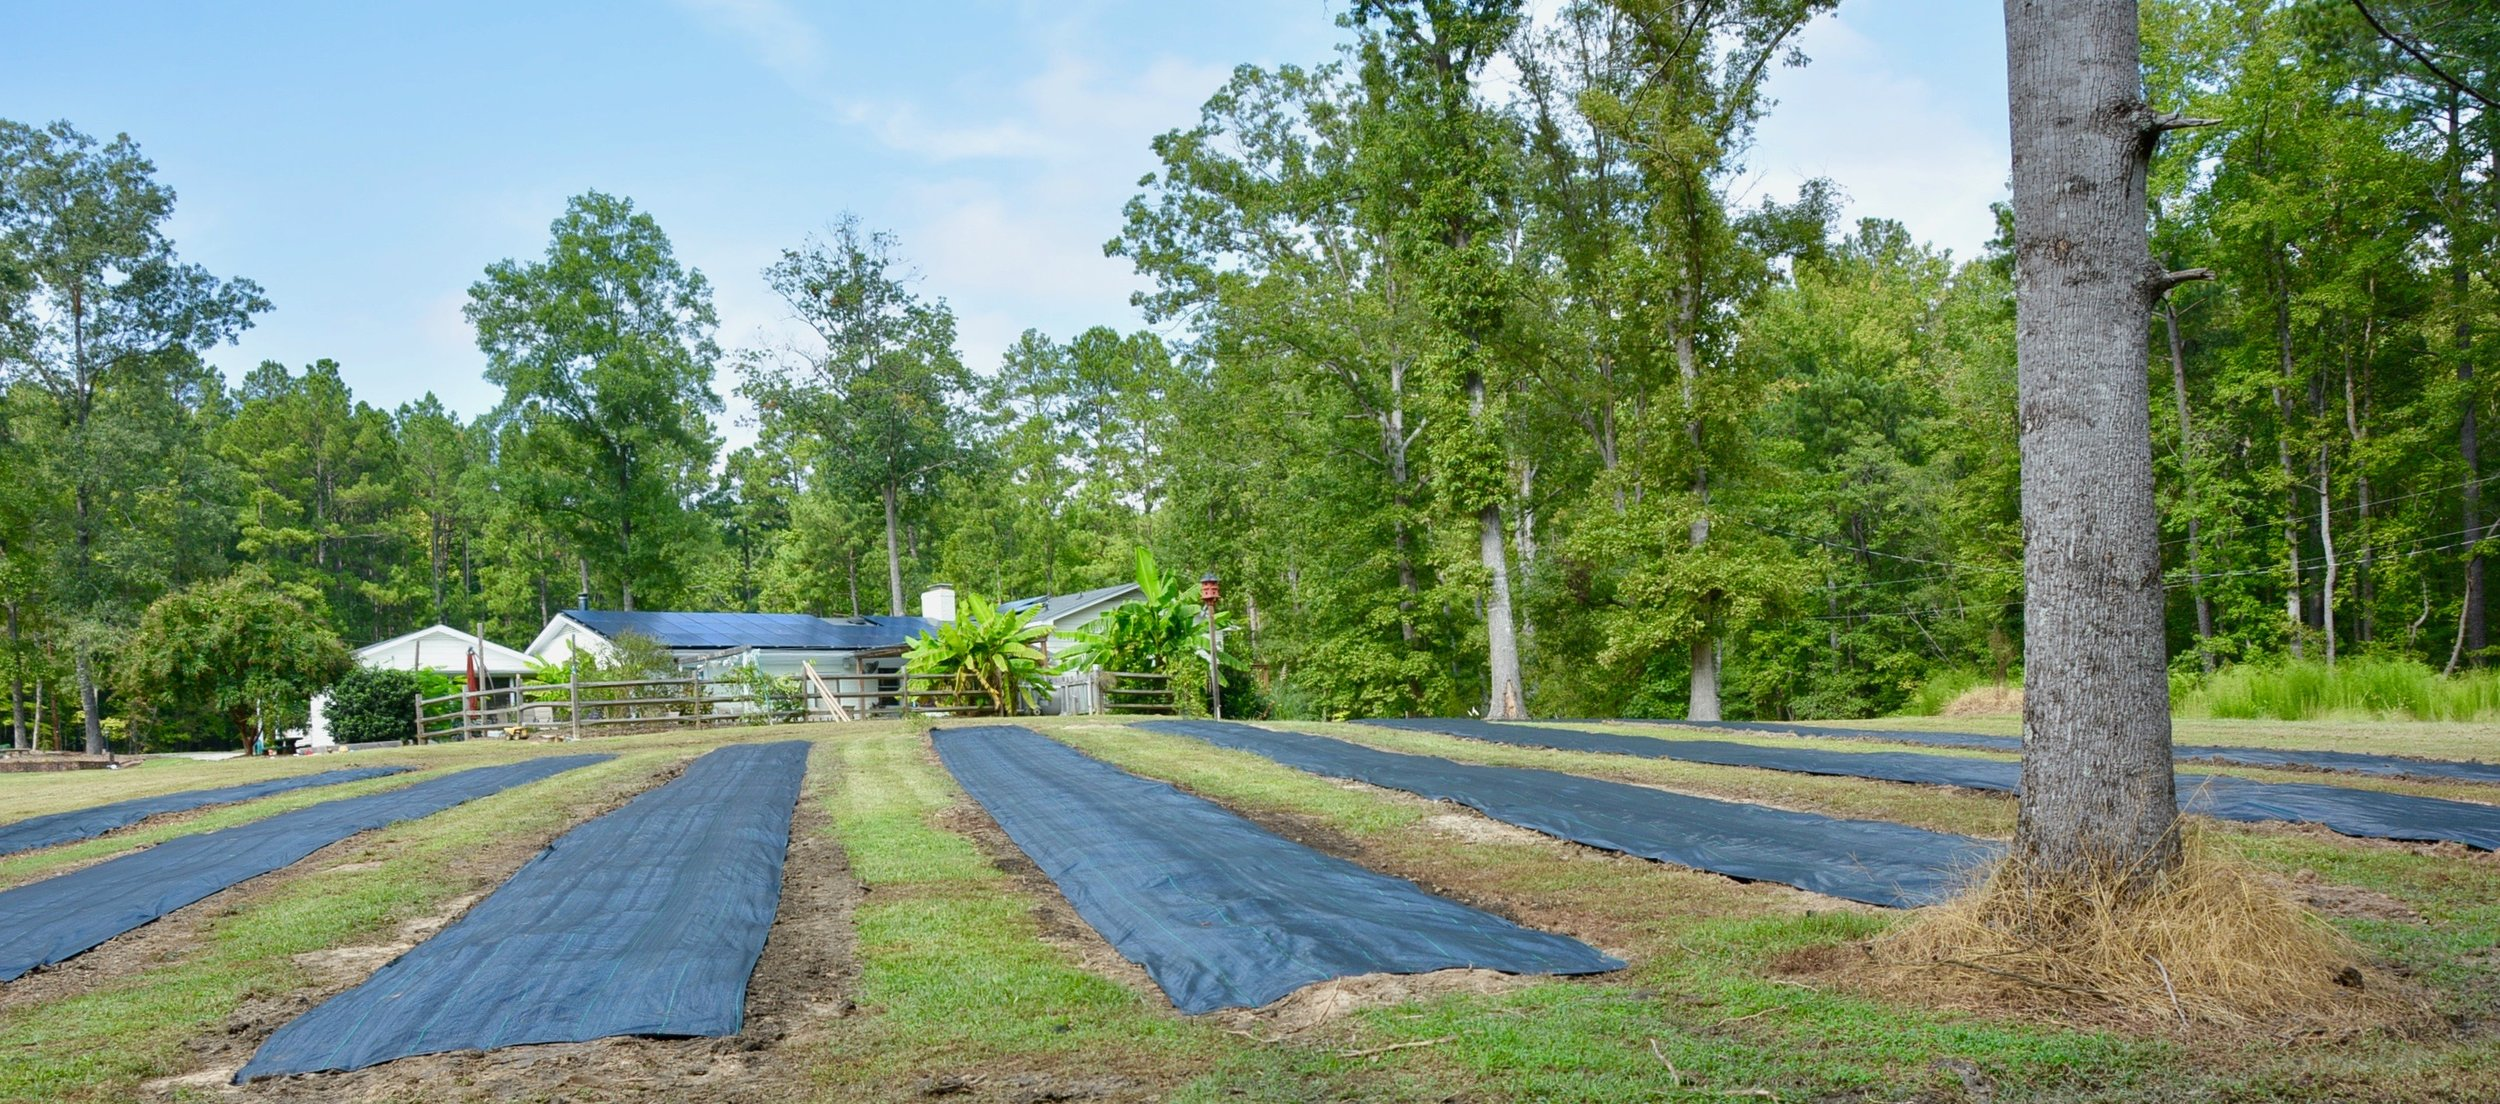 Perennial Beds are Ready for Planting -